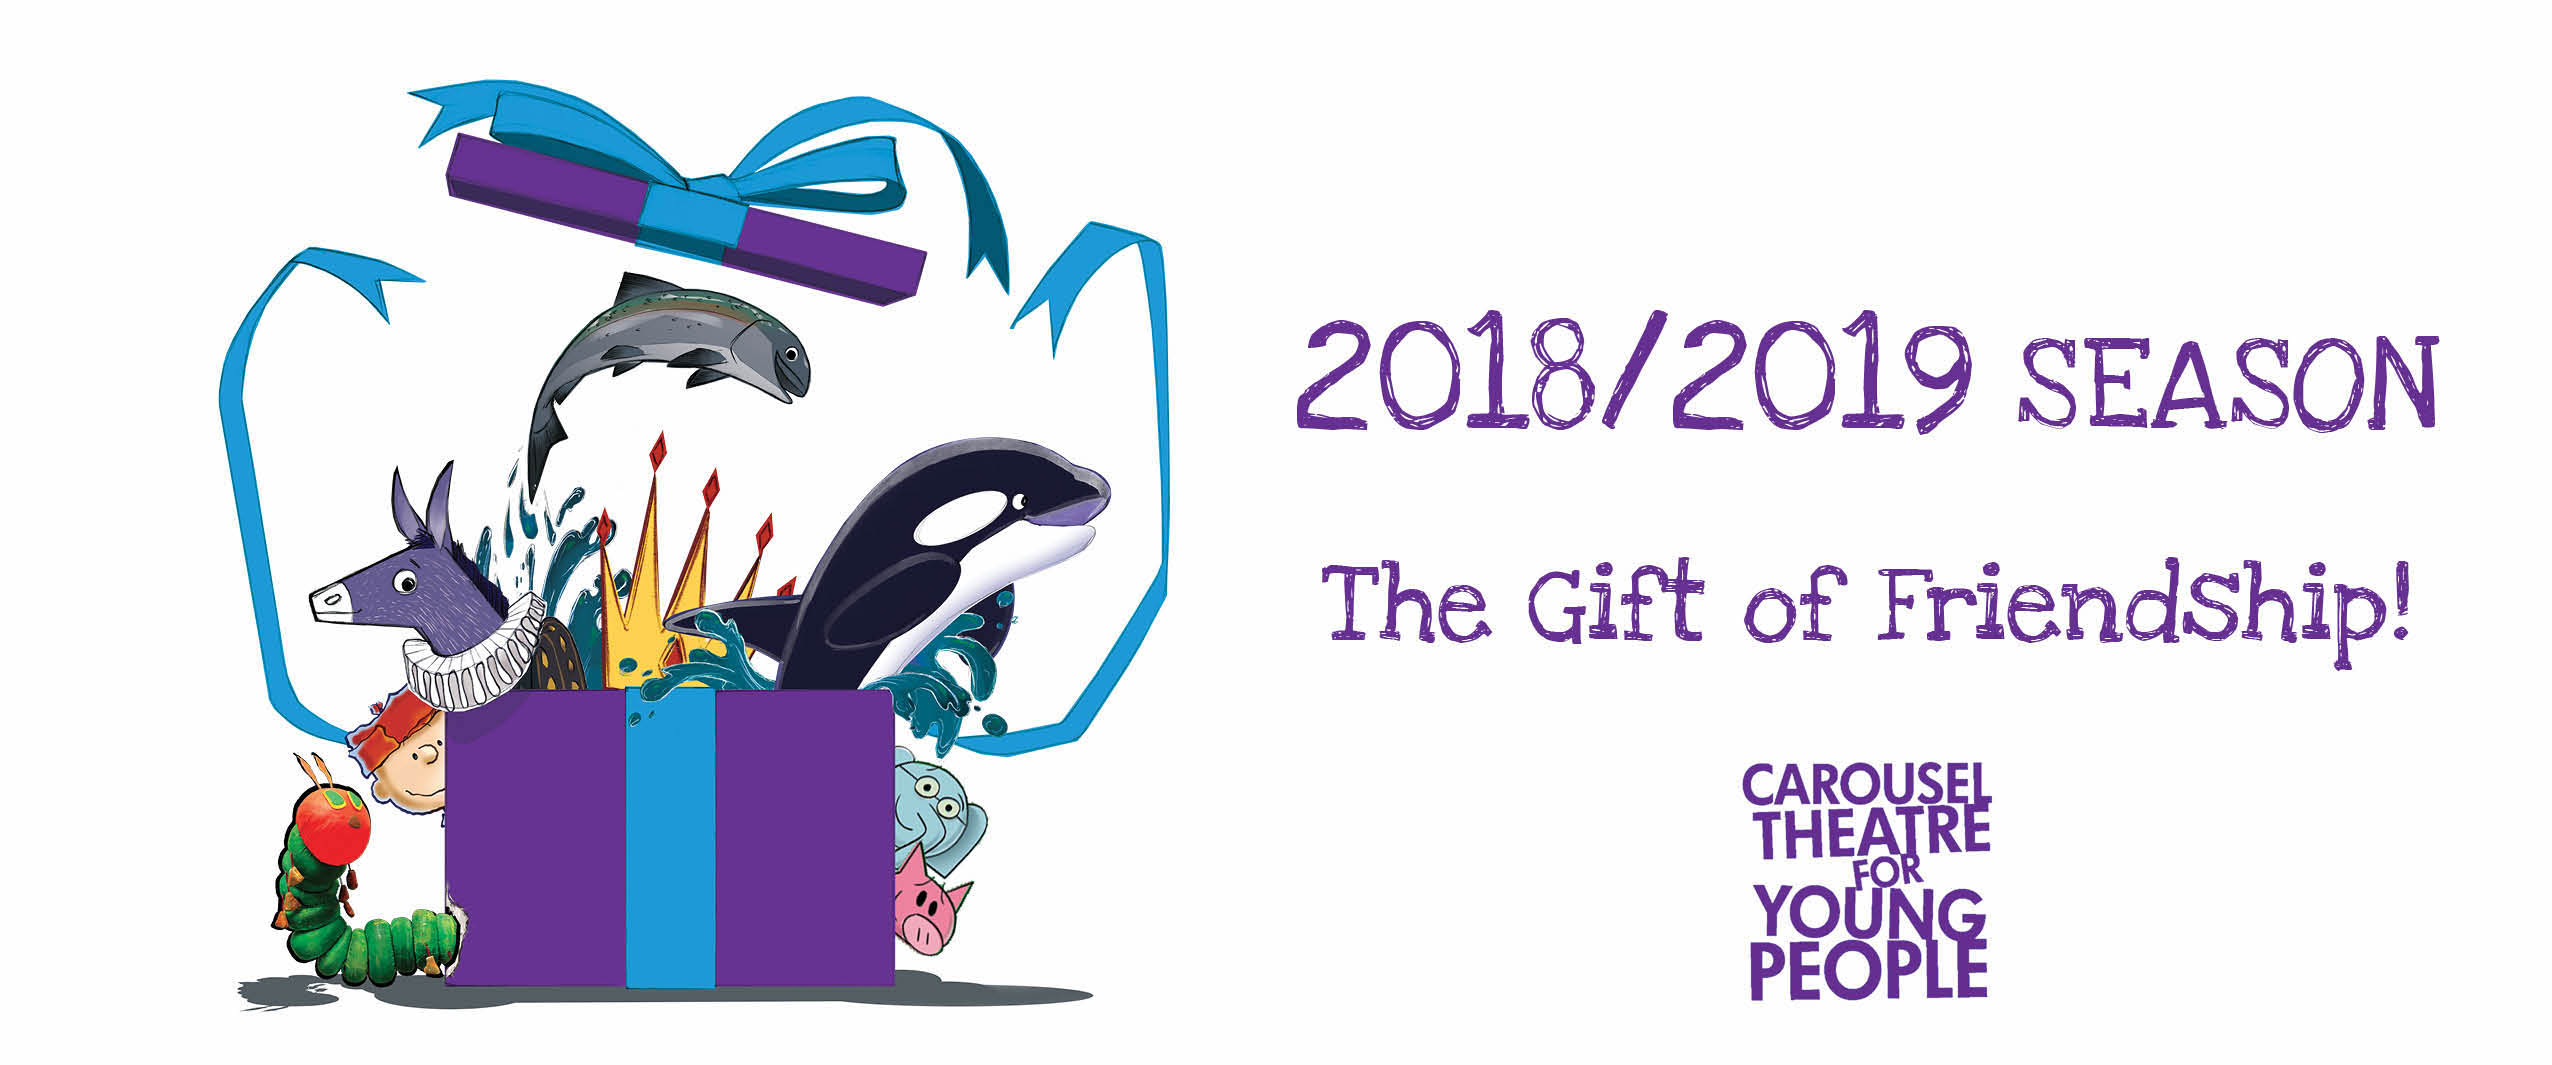 Carousel Theatre for Young People CTYP Unveils its 2018/2019 Season – The Gift of Friendship!